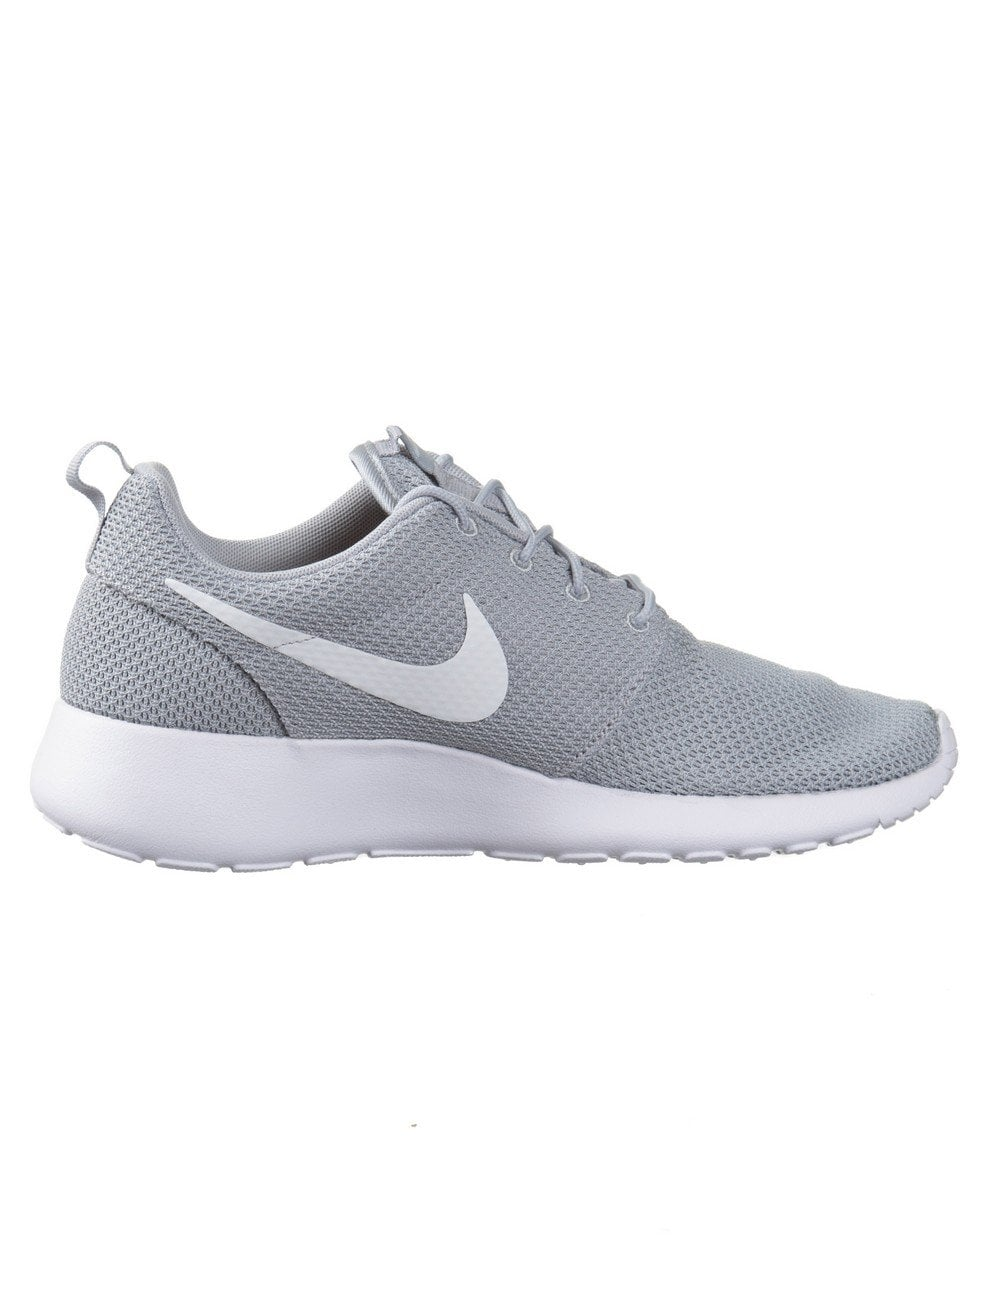 separation shoes 86c75 8ff44 Roshe Run Shoes - Wolf Grey/White